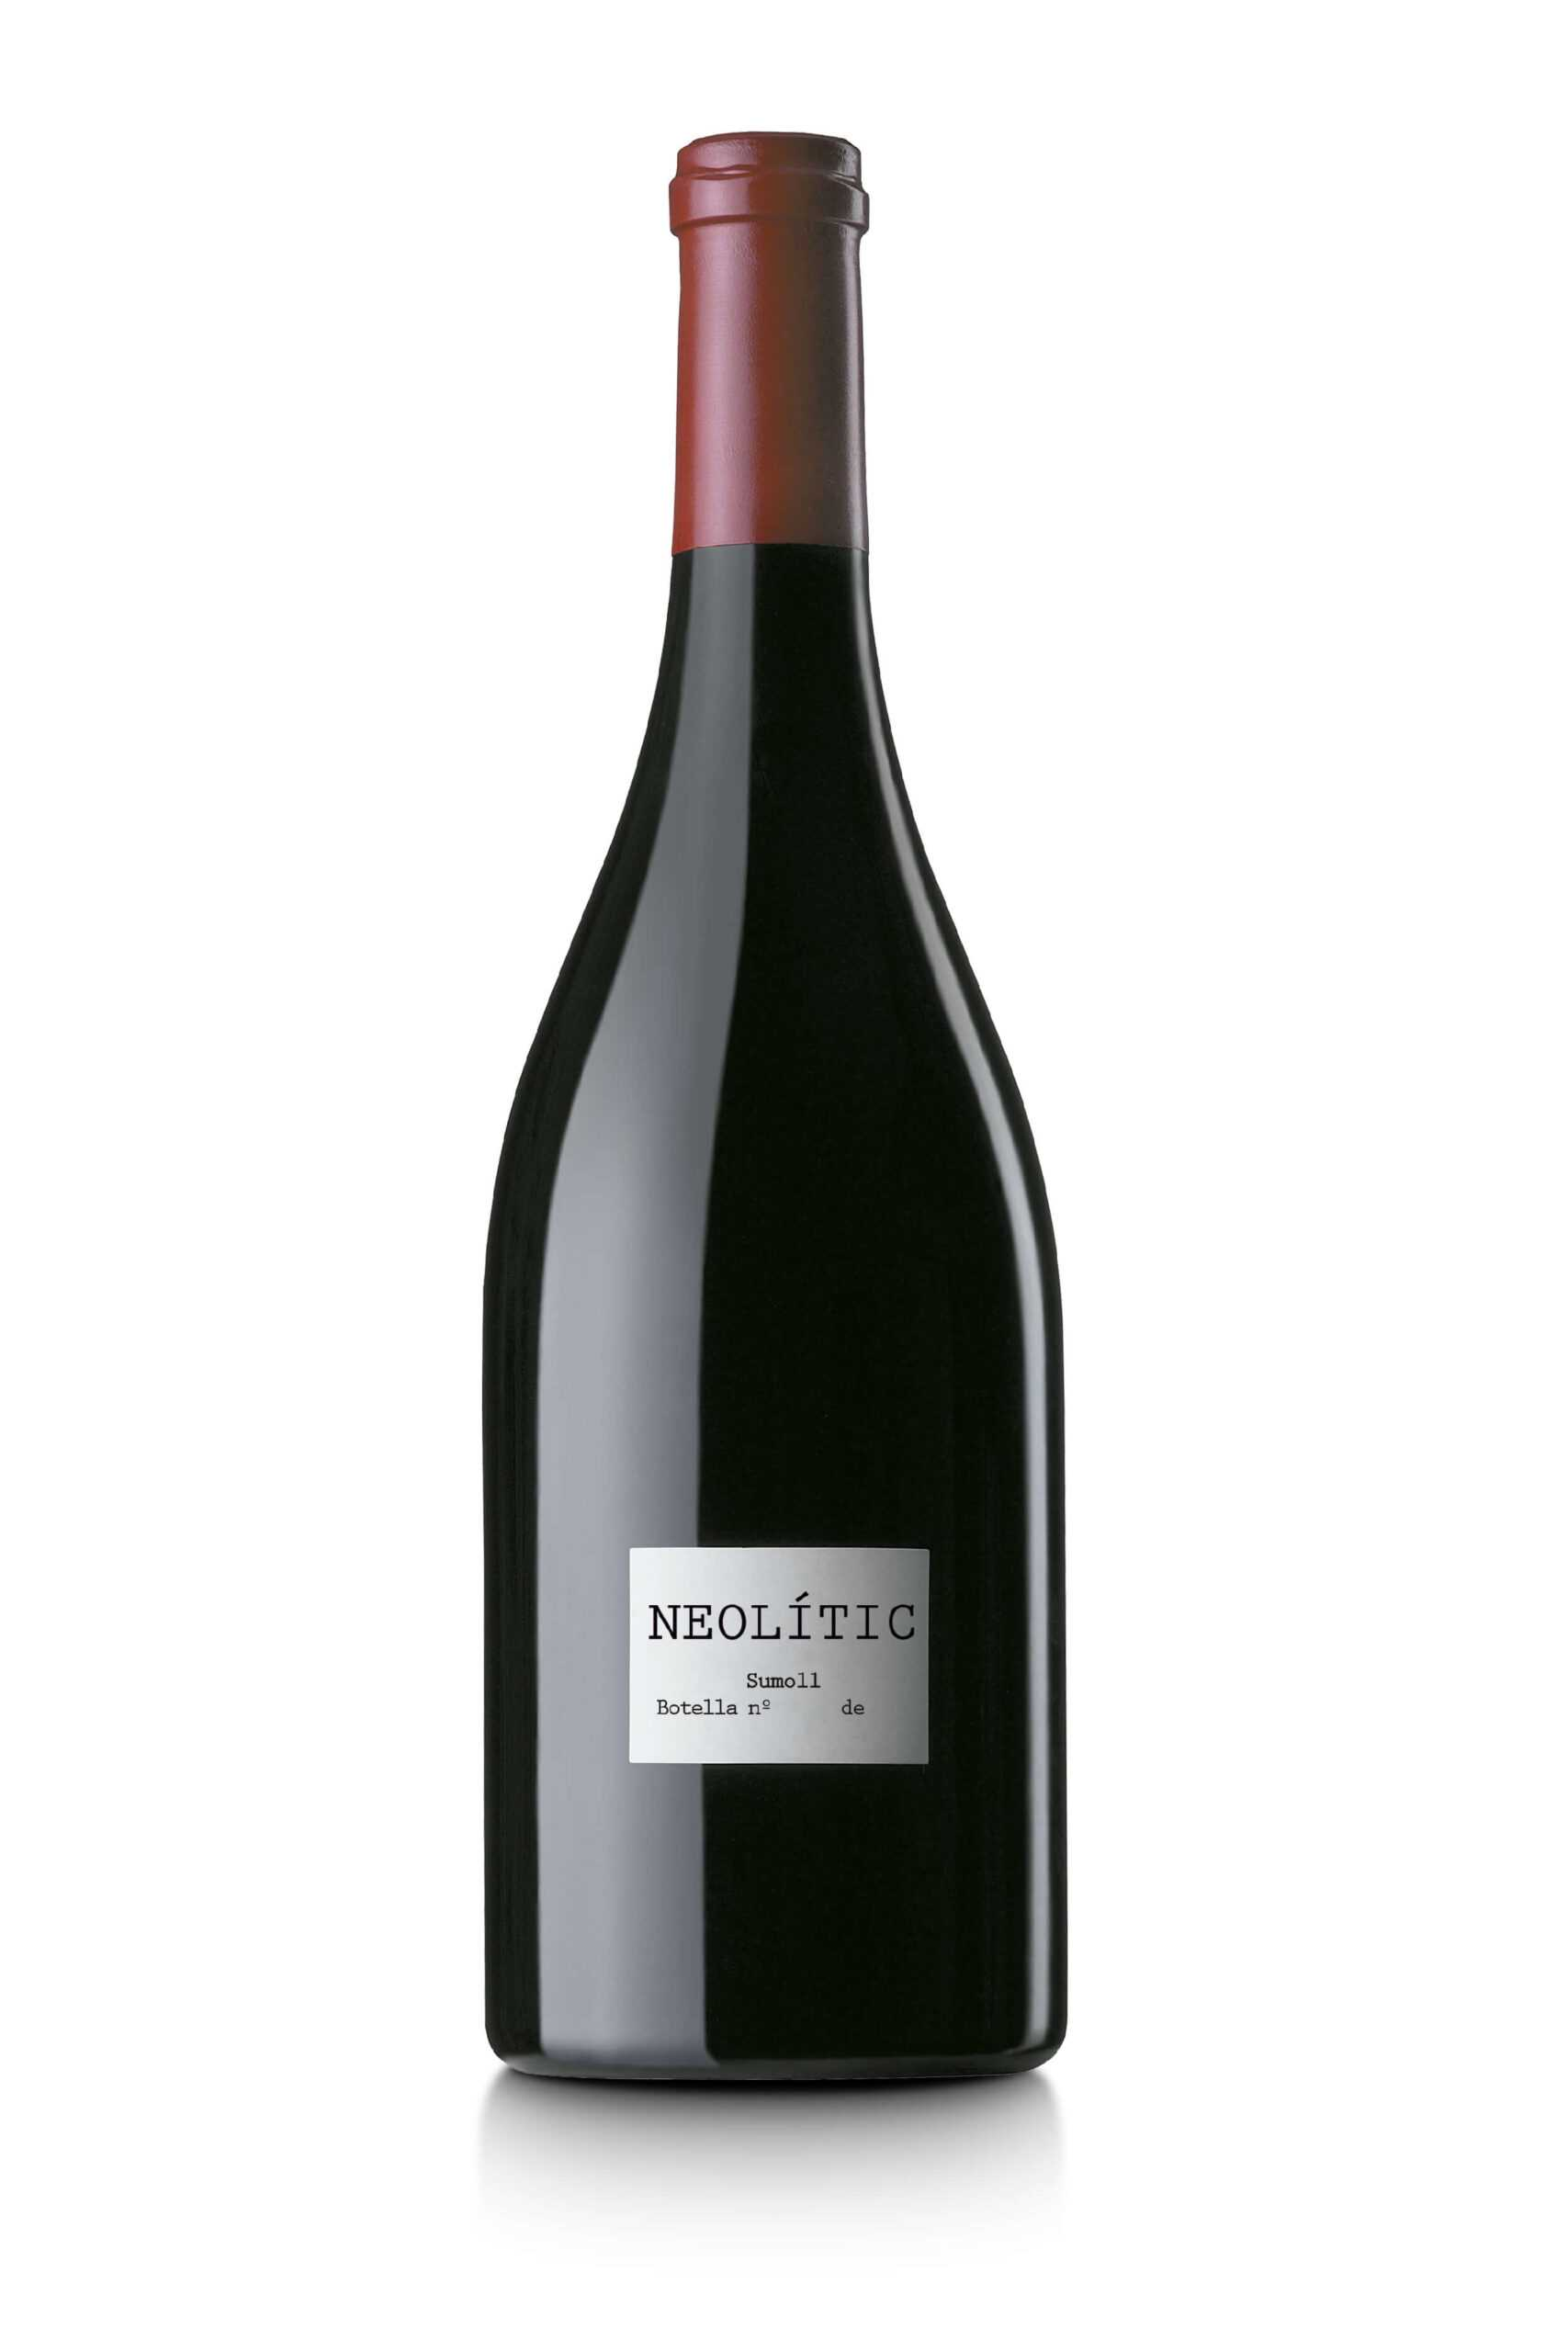 Neolític 2019 vino neolitic pares balta scaled